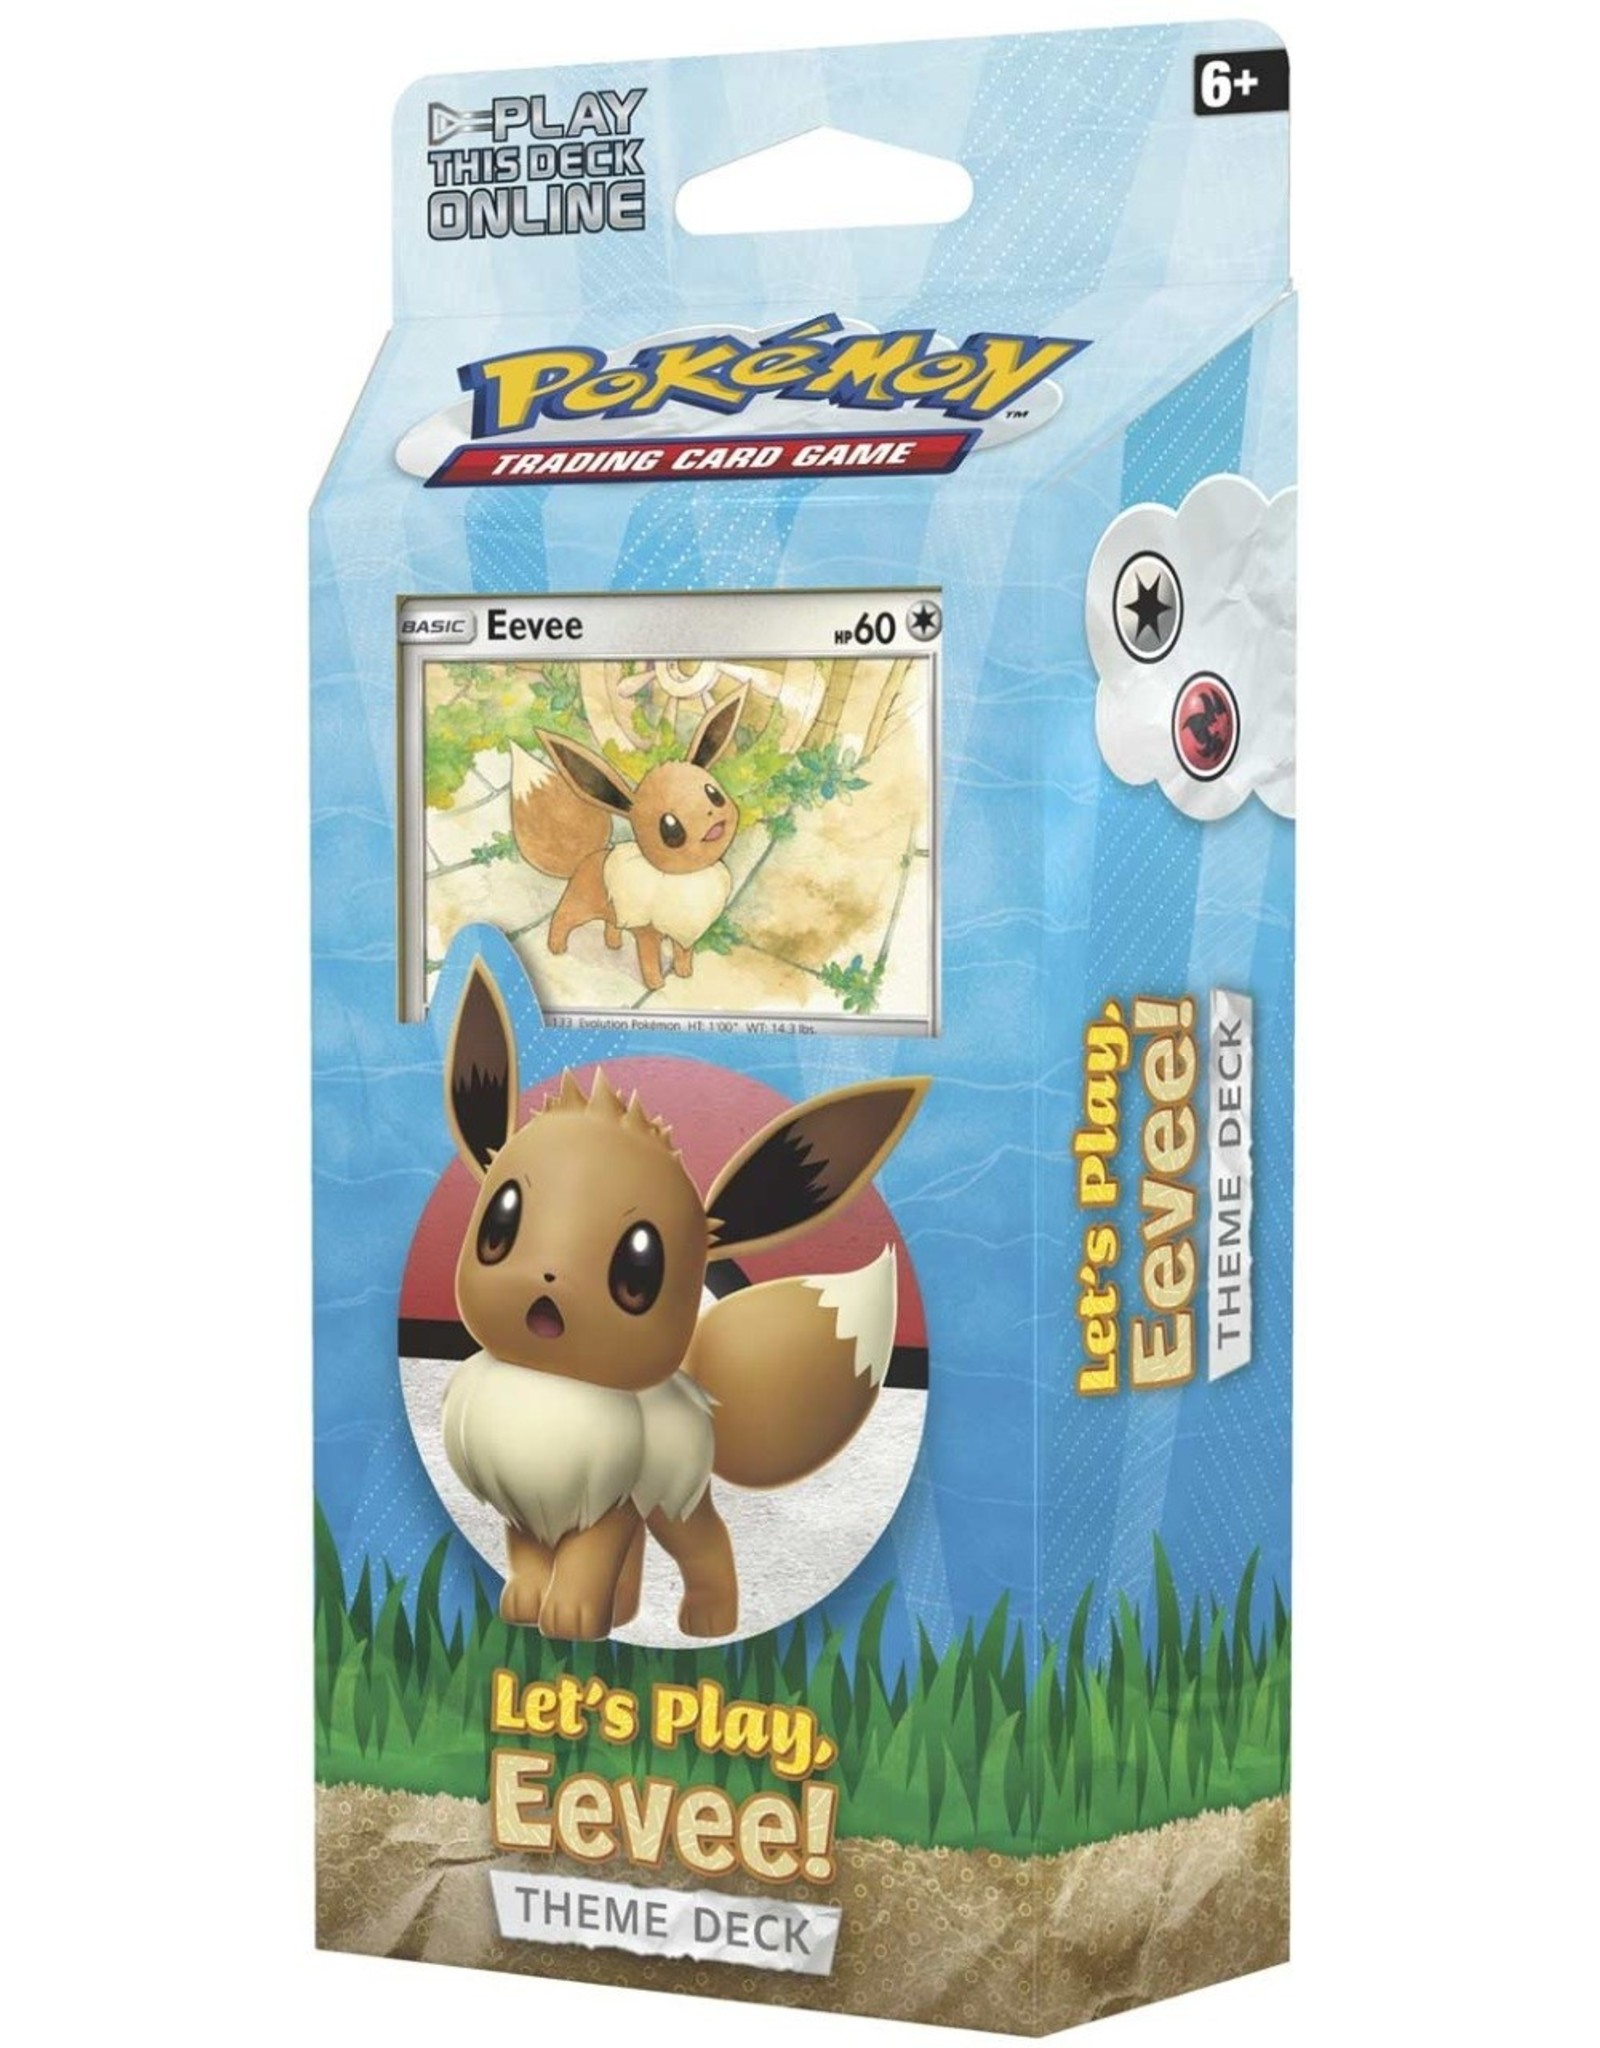 POKEMON Theme Deck: LET'S PLAY – EEVEE DECK